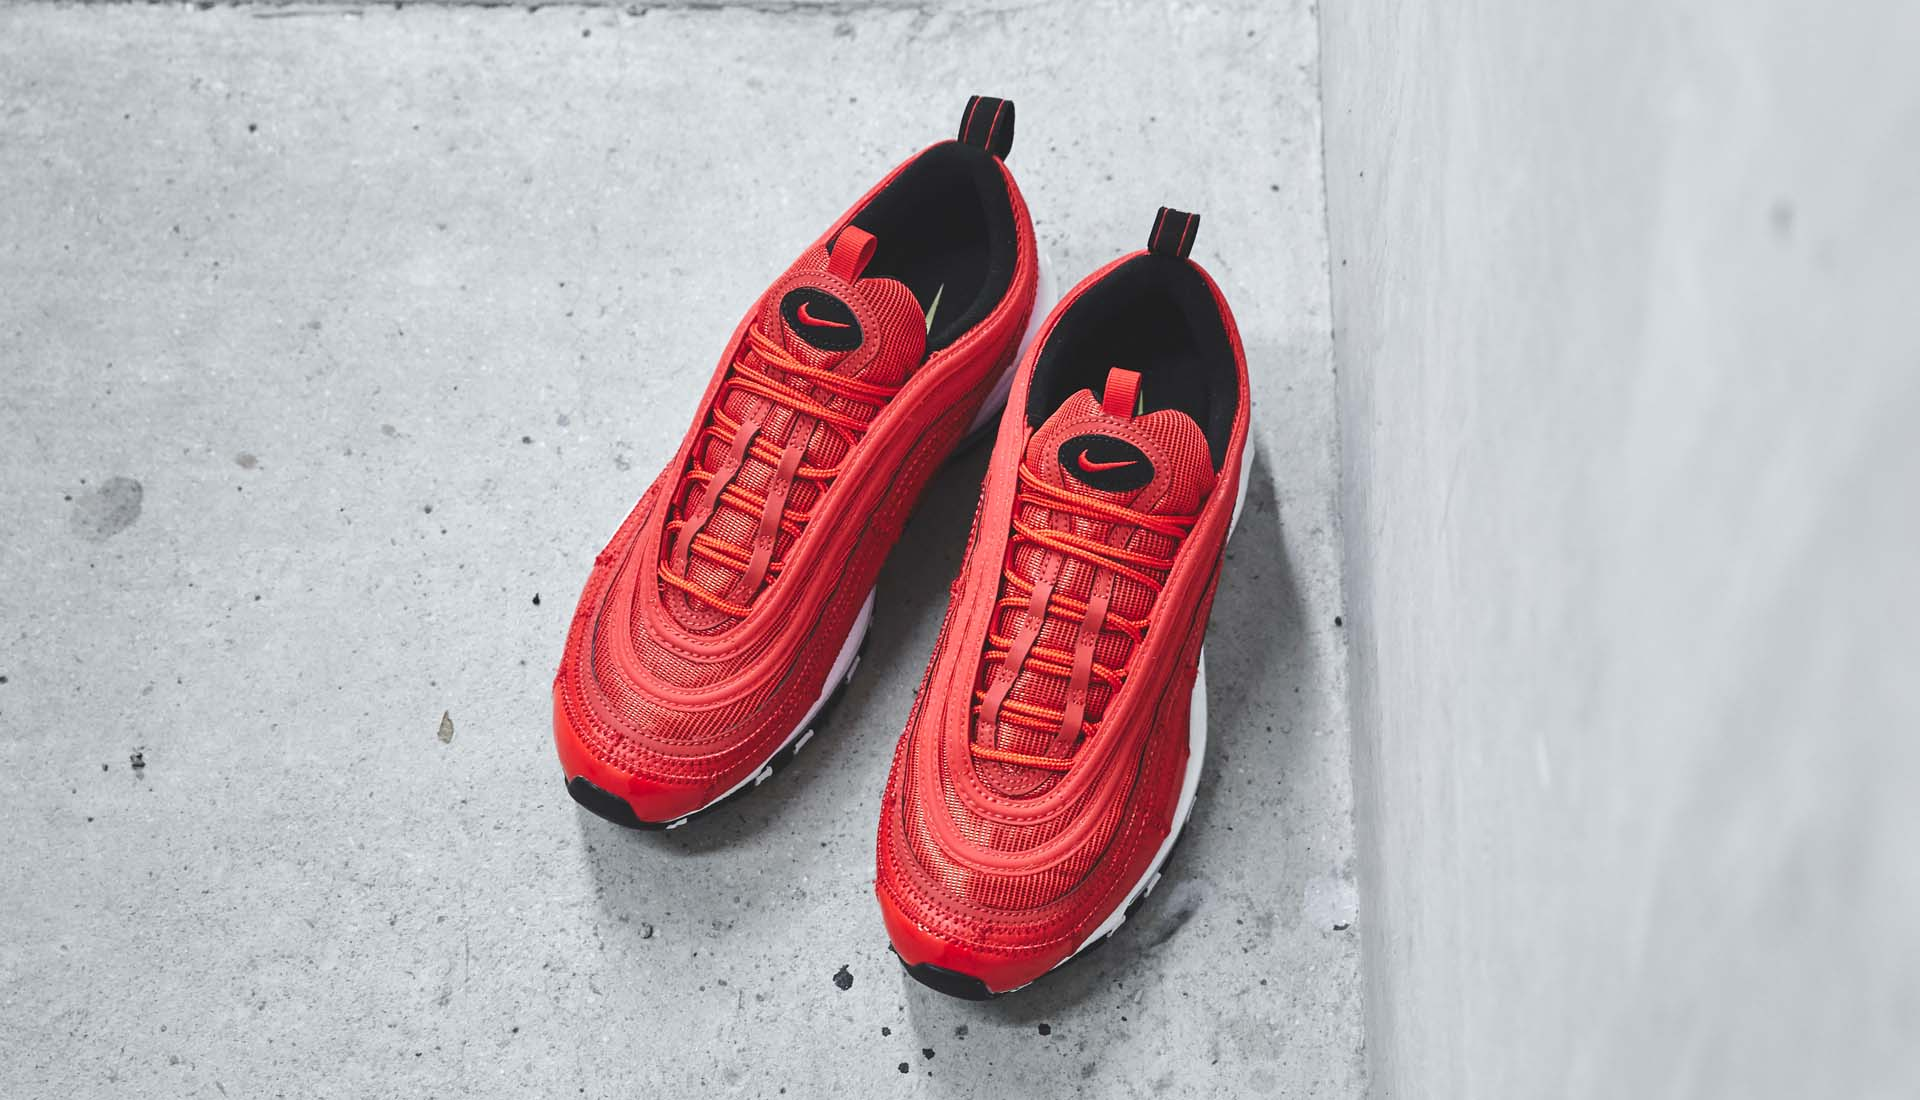 97 At Closer Air Cr7 Soccerbible A Look Nike The Max ABRnqCO